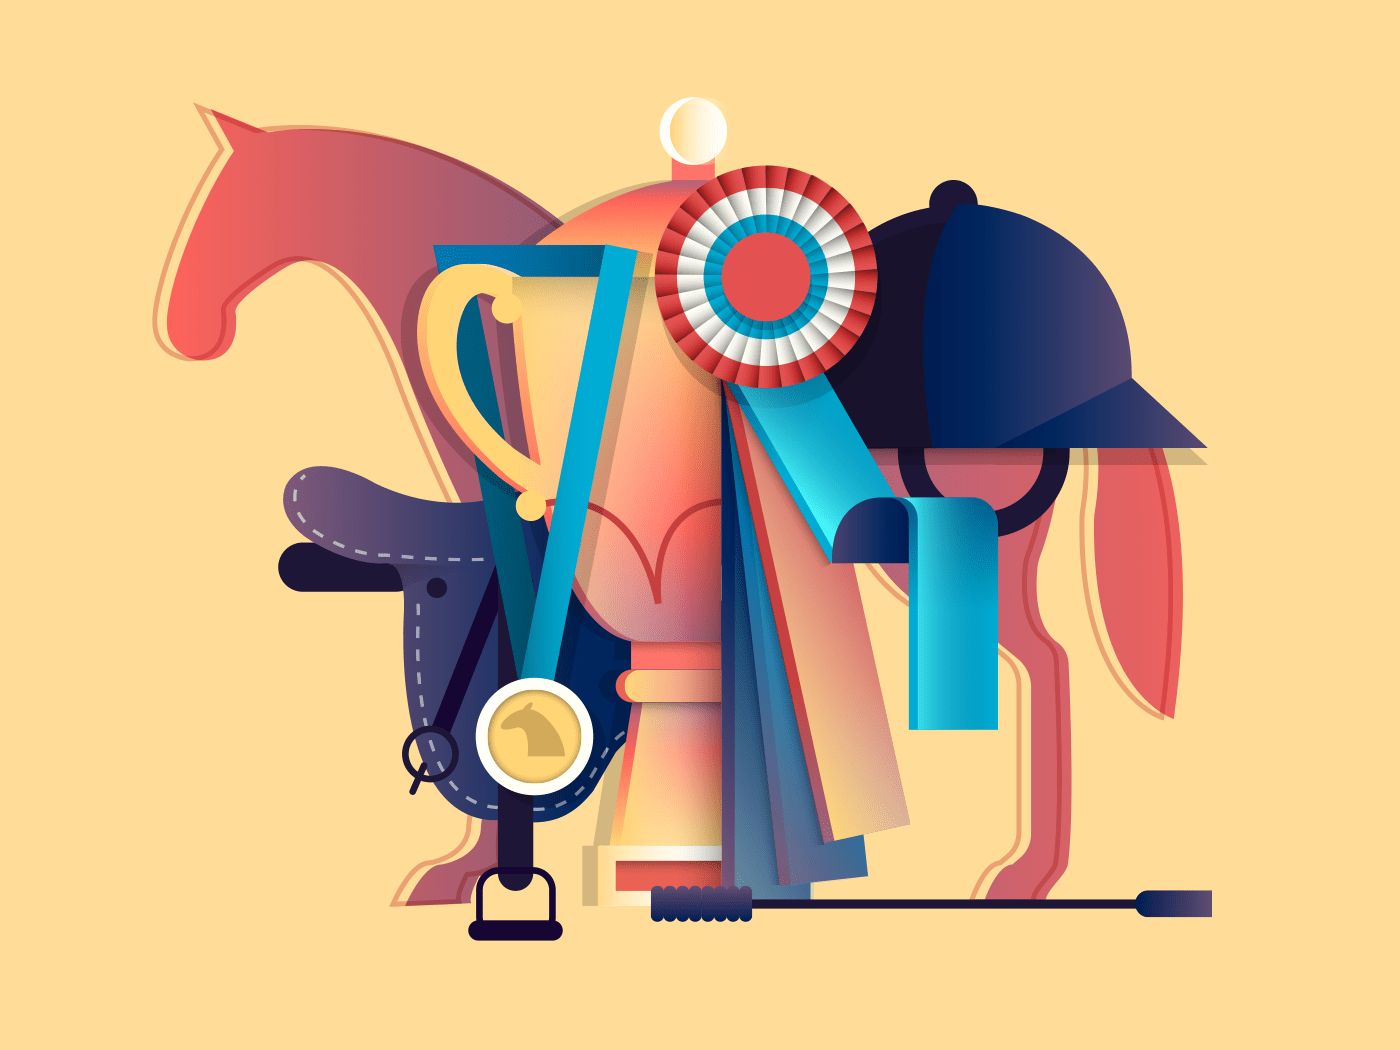 Win in equestrian sport illustration